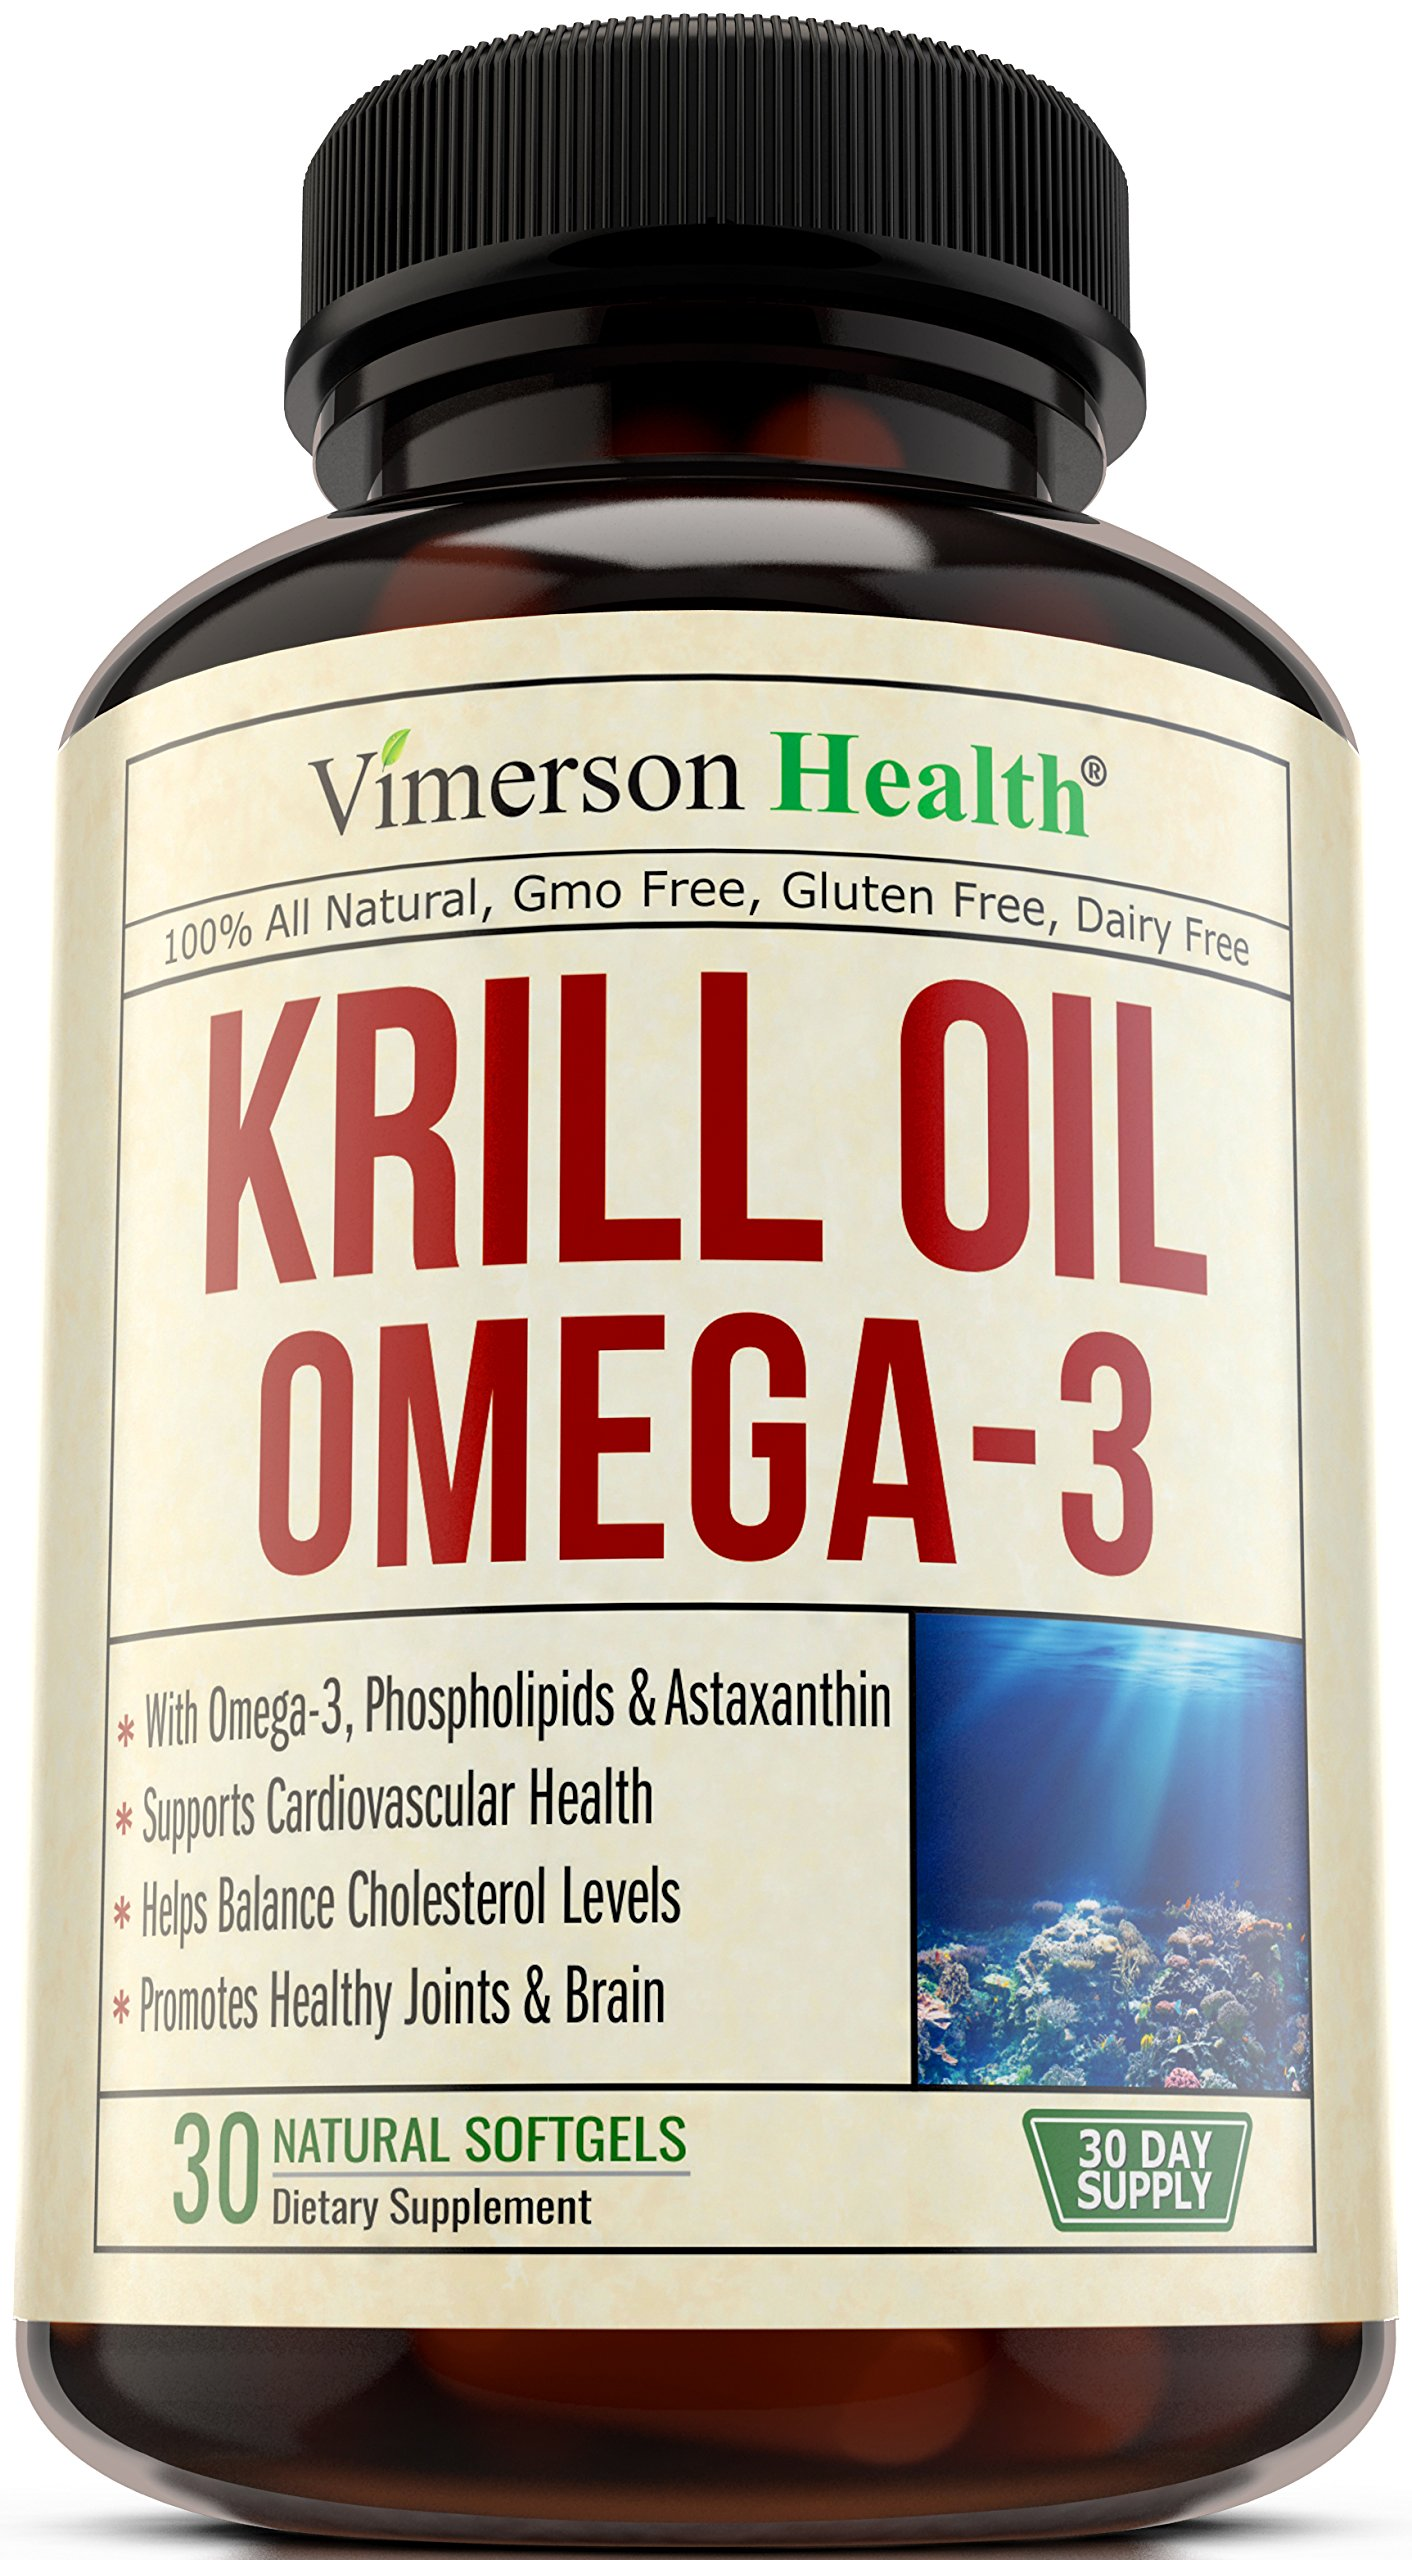 Krill Oil Omega 3 EPA & DHA - With Astaxanthin & Phospholipids. Helps Balance Cholesterol, Supports Heart Health and Brain Function. Antioxidant & Joint Health Support. Antarctic Krill Oil 30 Softgels